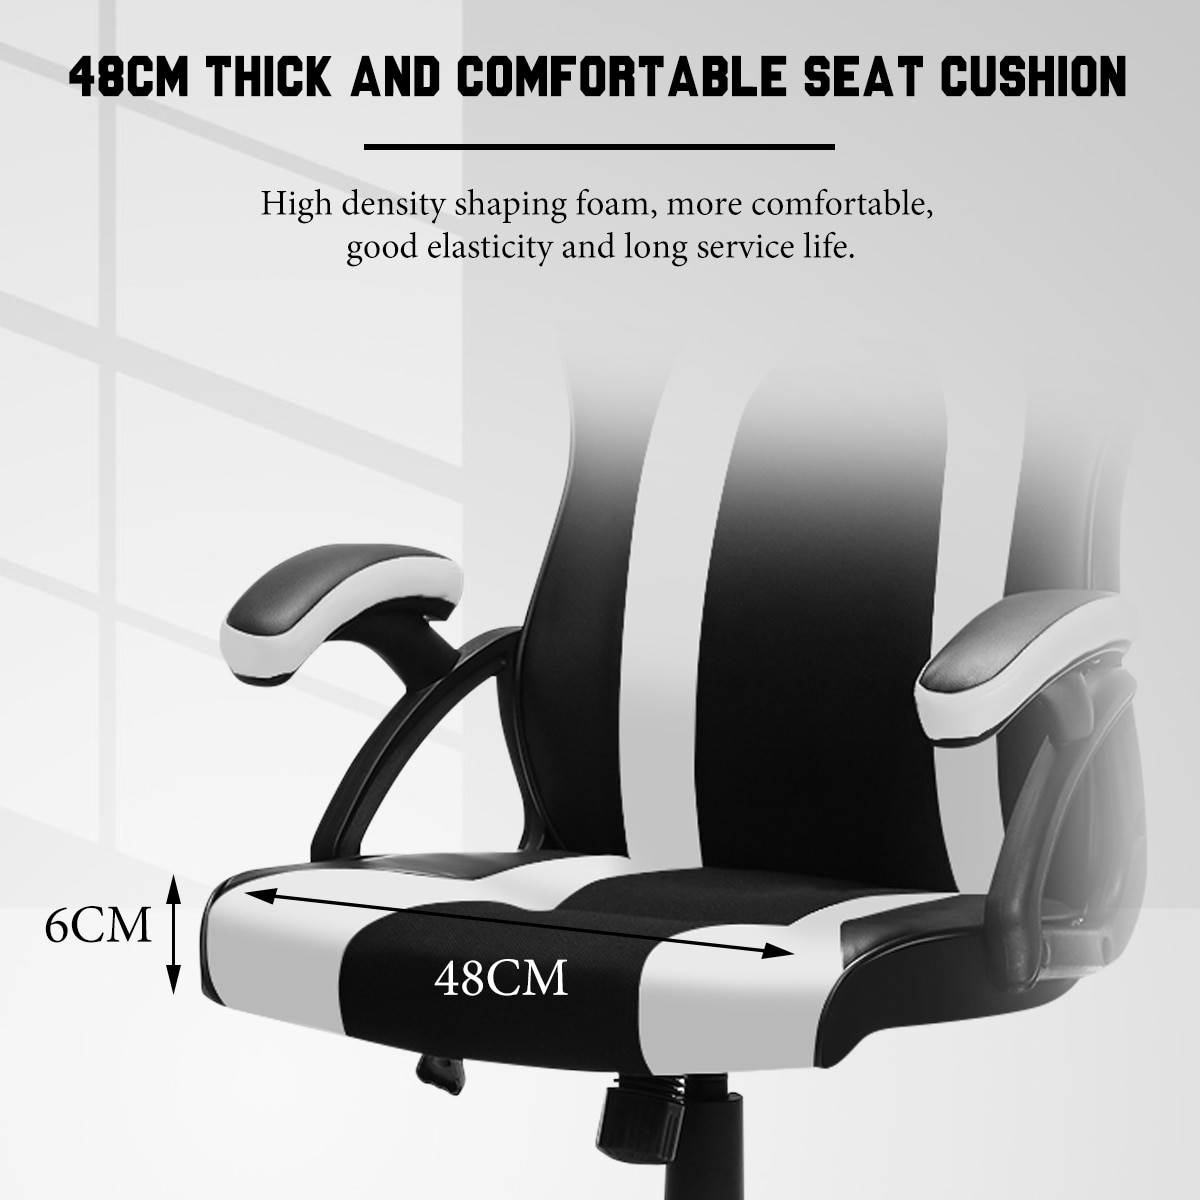 H87b868c48ec64535acd4a98d6c9de113X - Gaming Office Chairs Executive Computer Chair Desk Chair Comfortable Seating Adjustable Swivel Racing Armchair Office Furniture